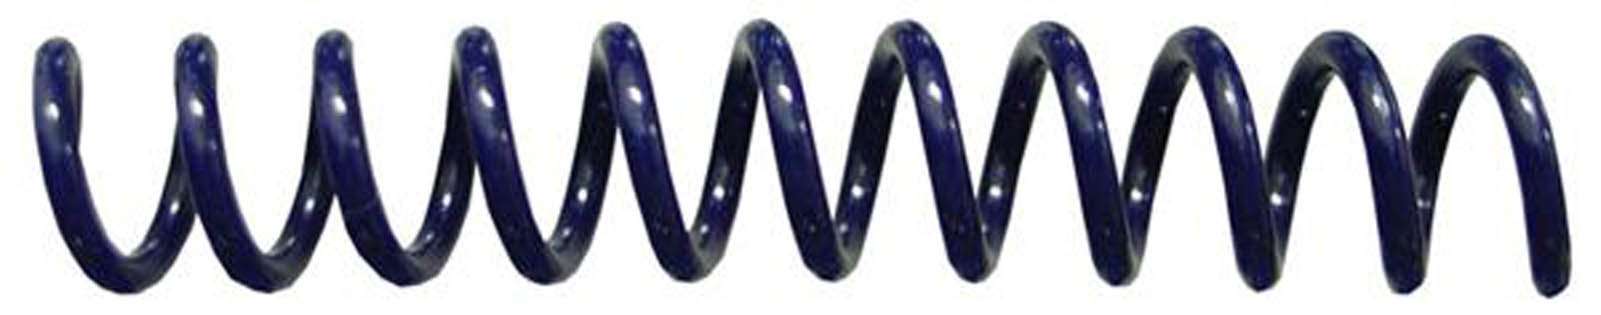 7mm (9/32) Navy Coil Bindings (Qty 100) Color: Navy, Model: , Office Shop